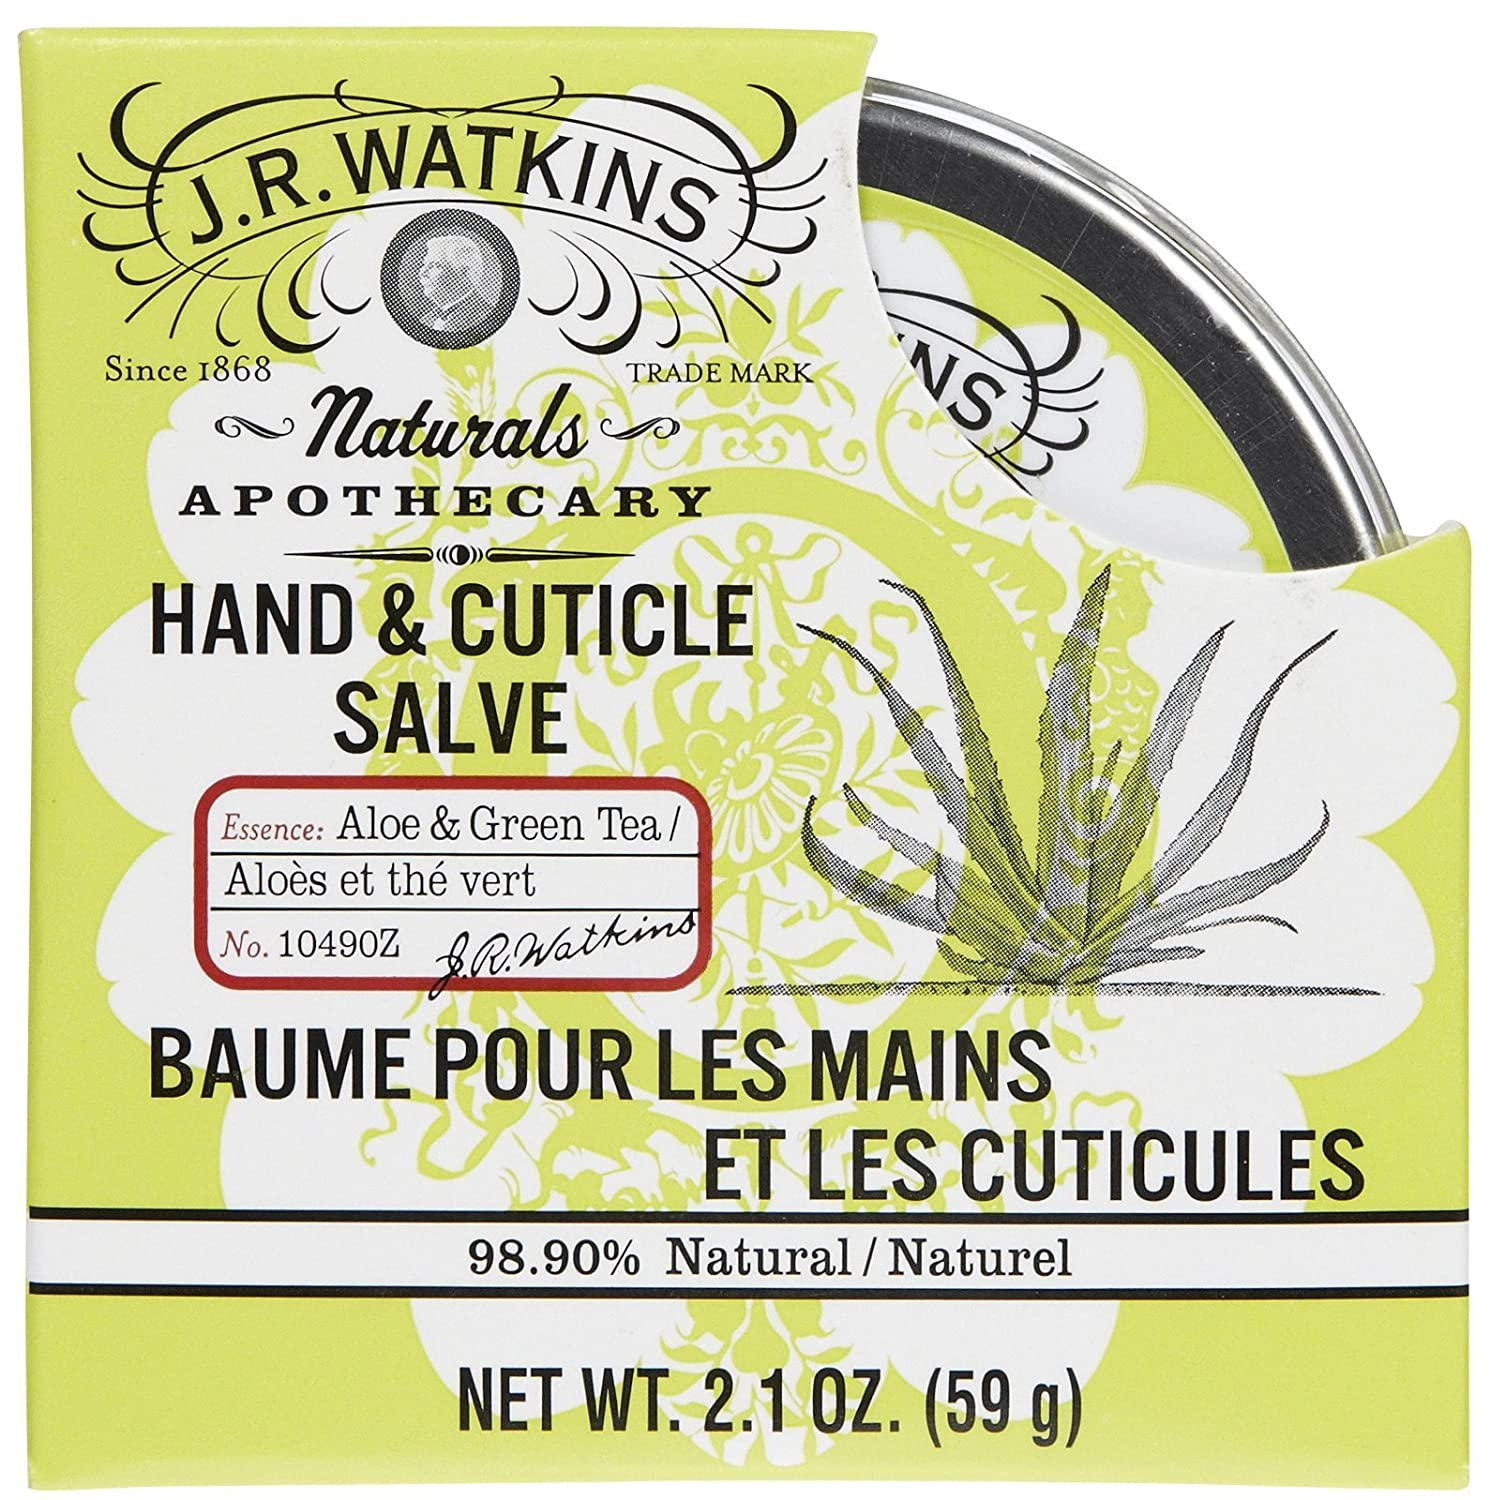 J. R. Watkins Hand and Cuticle Salve Aloe and Green Tea - 2.1 oz J R Watkins 10490